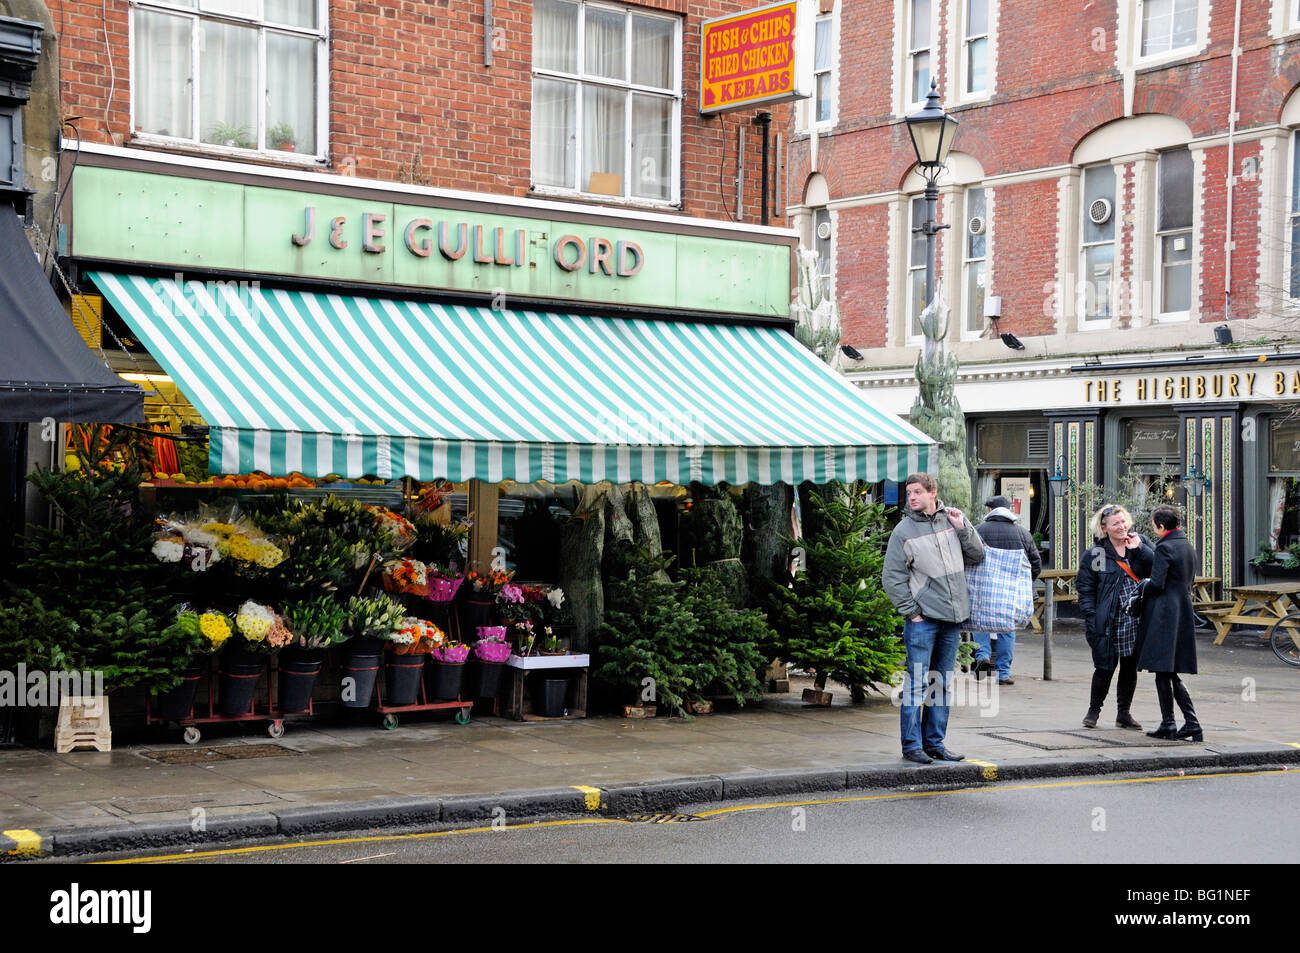 Greengrocers Shop Highbury Barn Islington London England UK Stock Photo